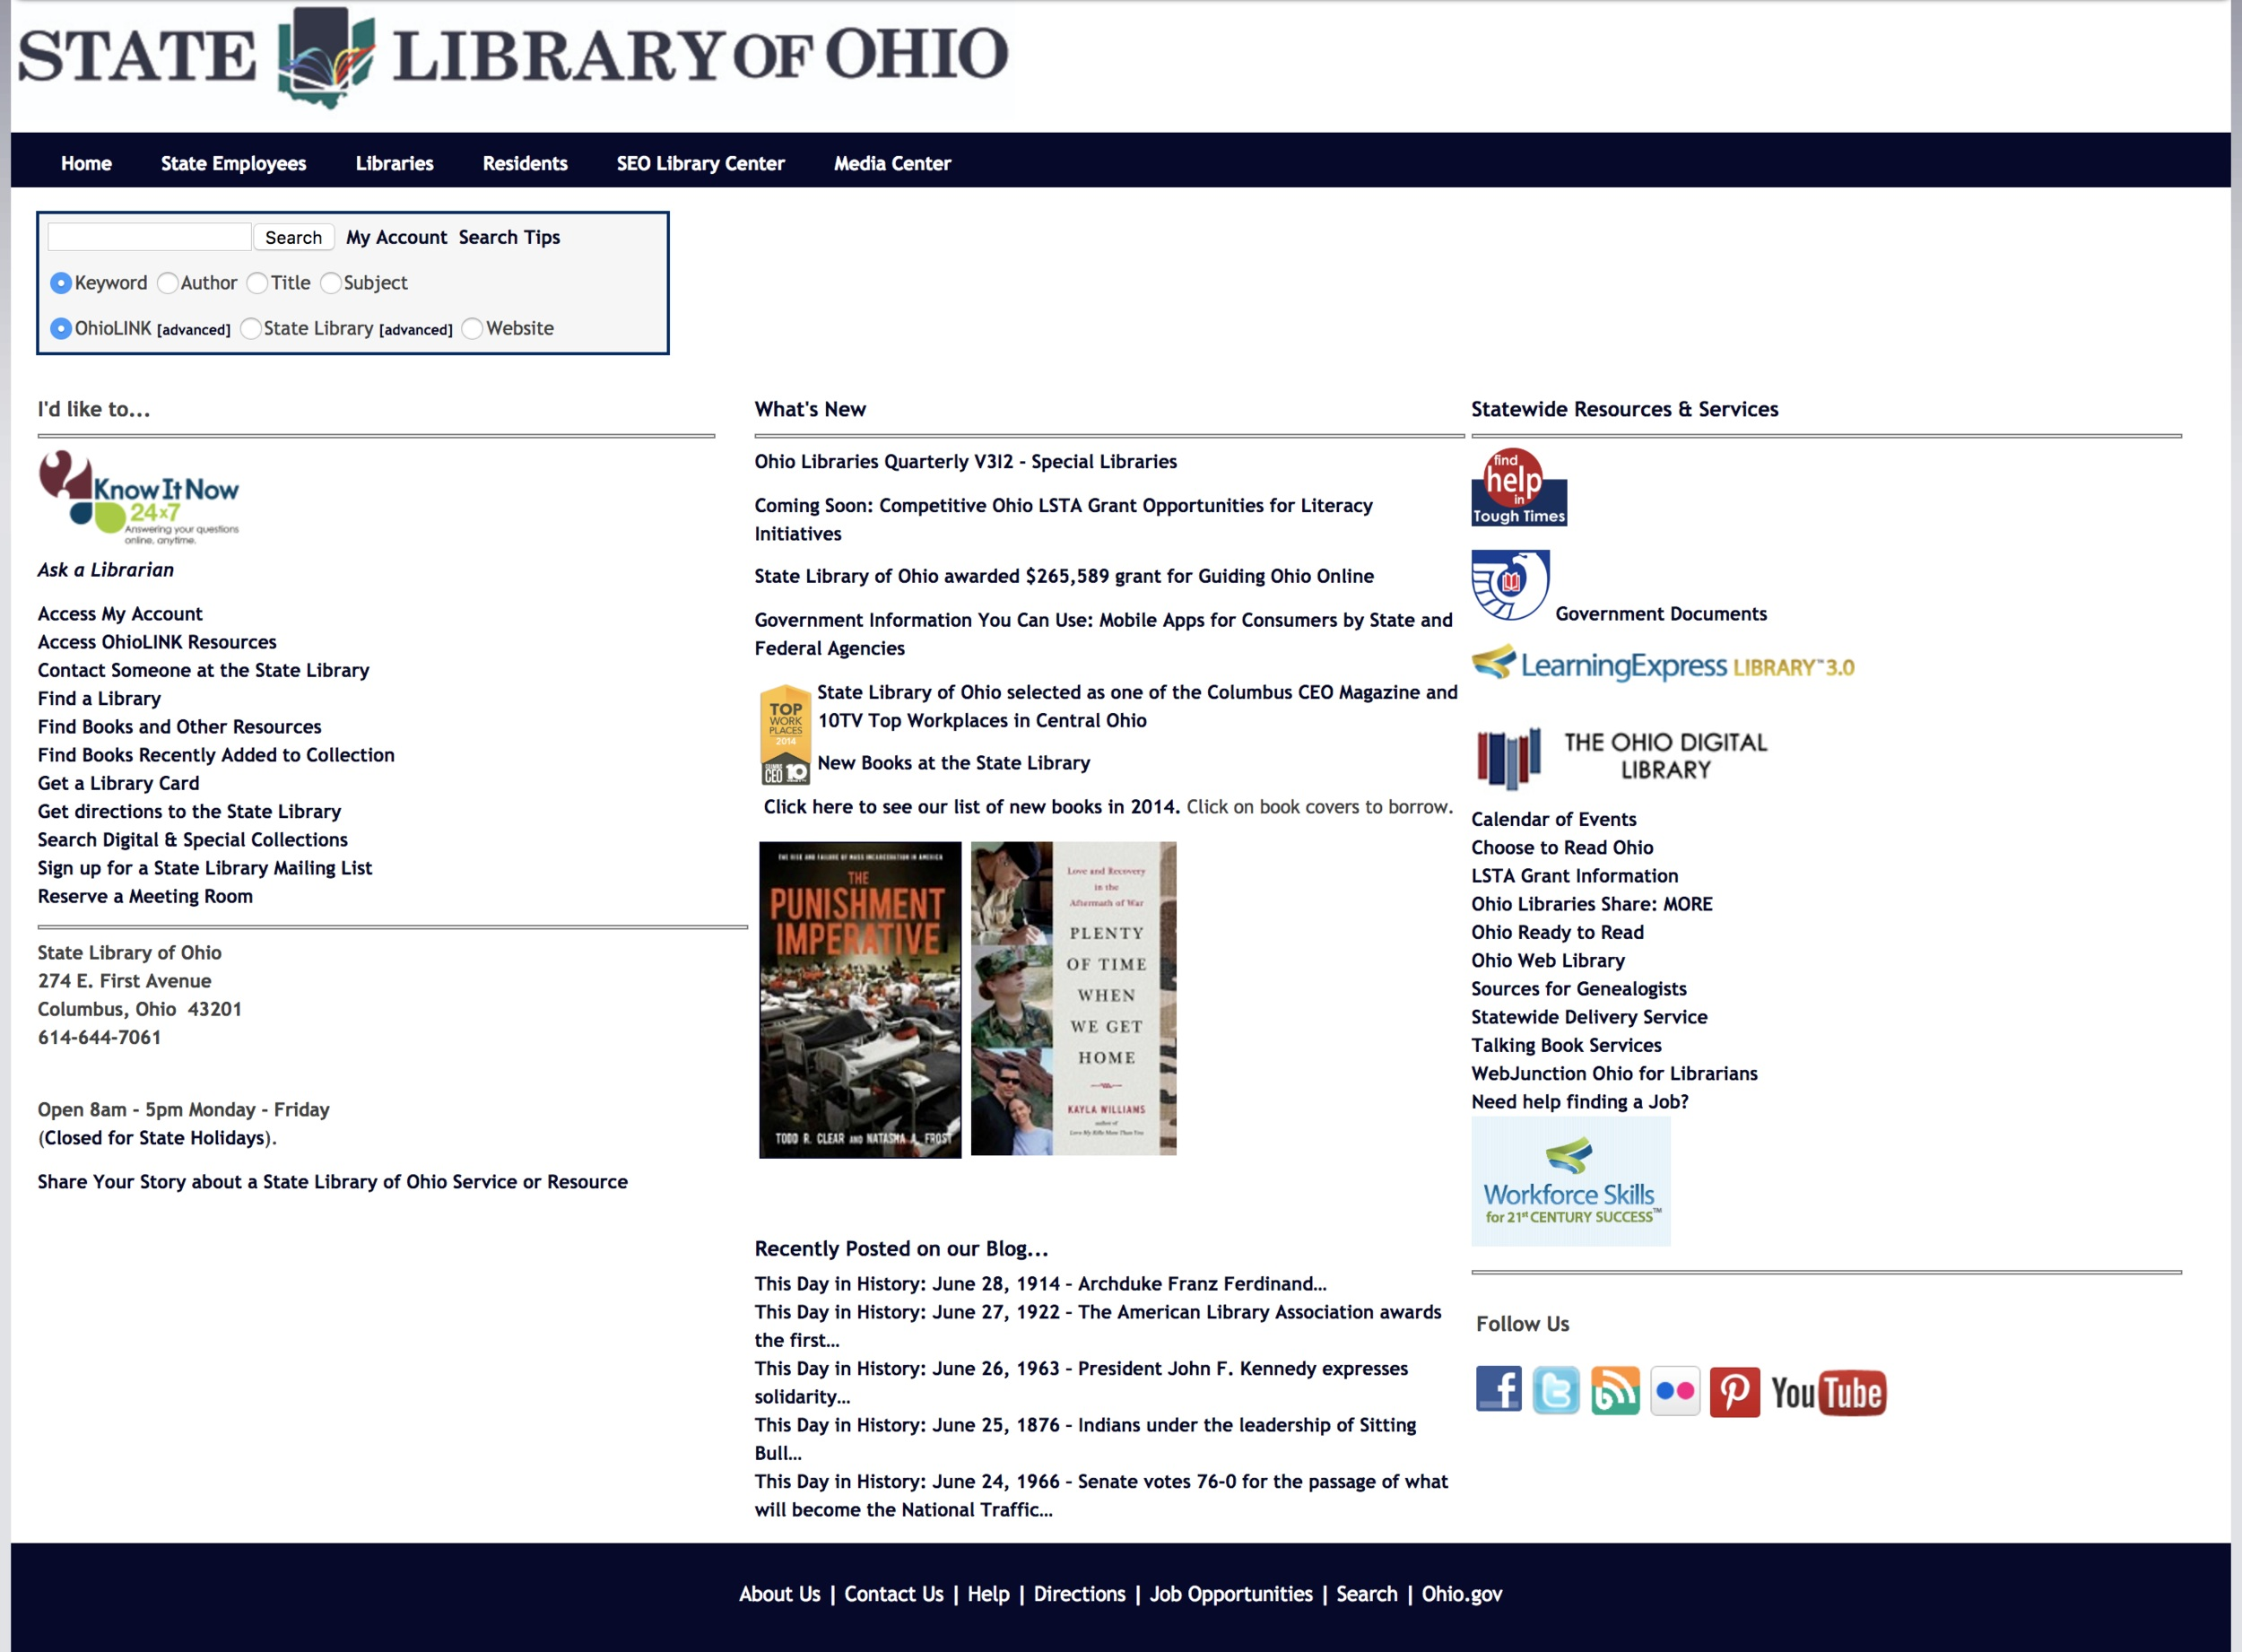 The organization of content in the old library website made it difficult to find relevant materials. The primary feature, search, was hidden.